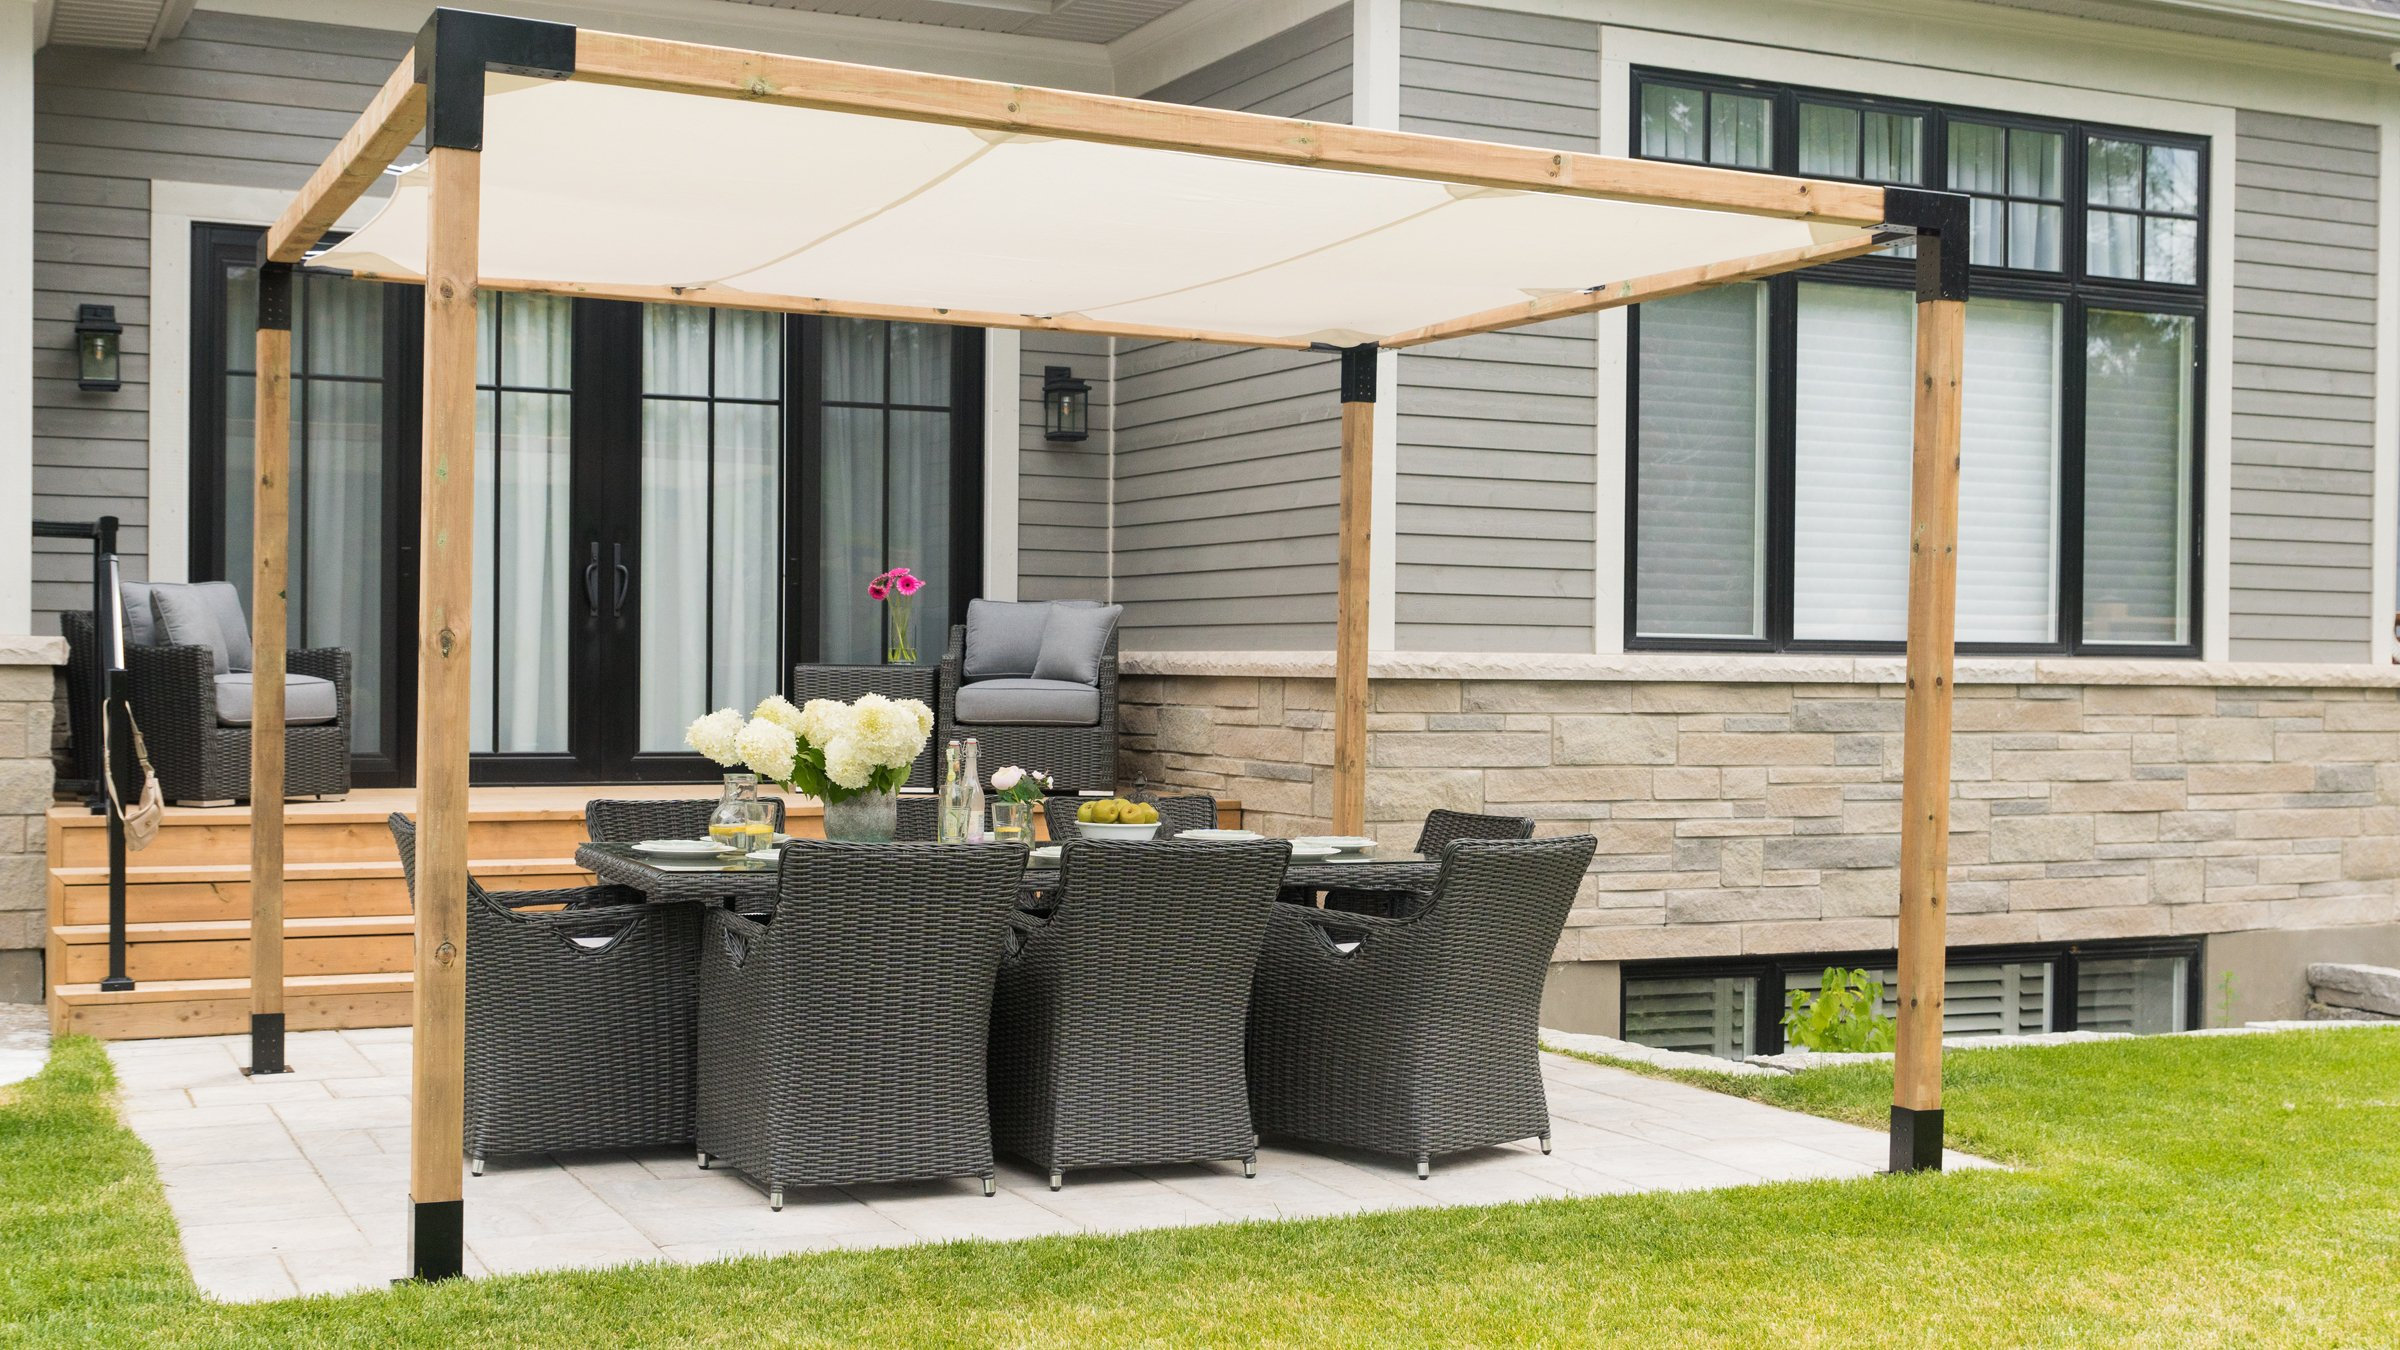 Toja Grid Pergola 12 x 12 Kit – pantalla en color blanco: Amazon ...